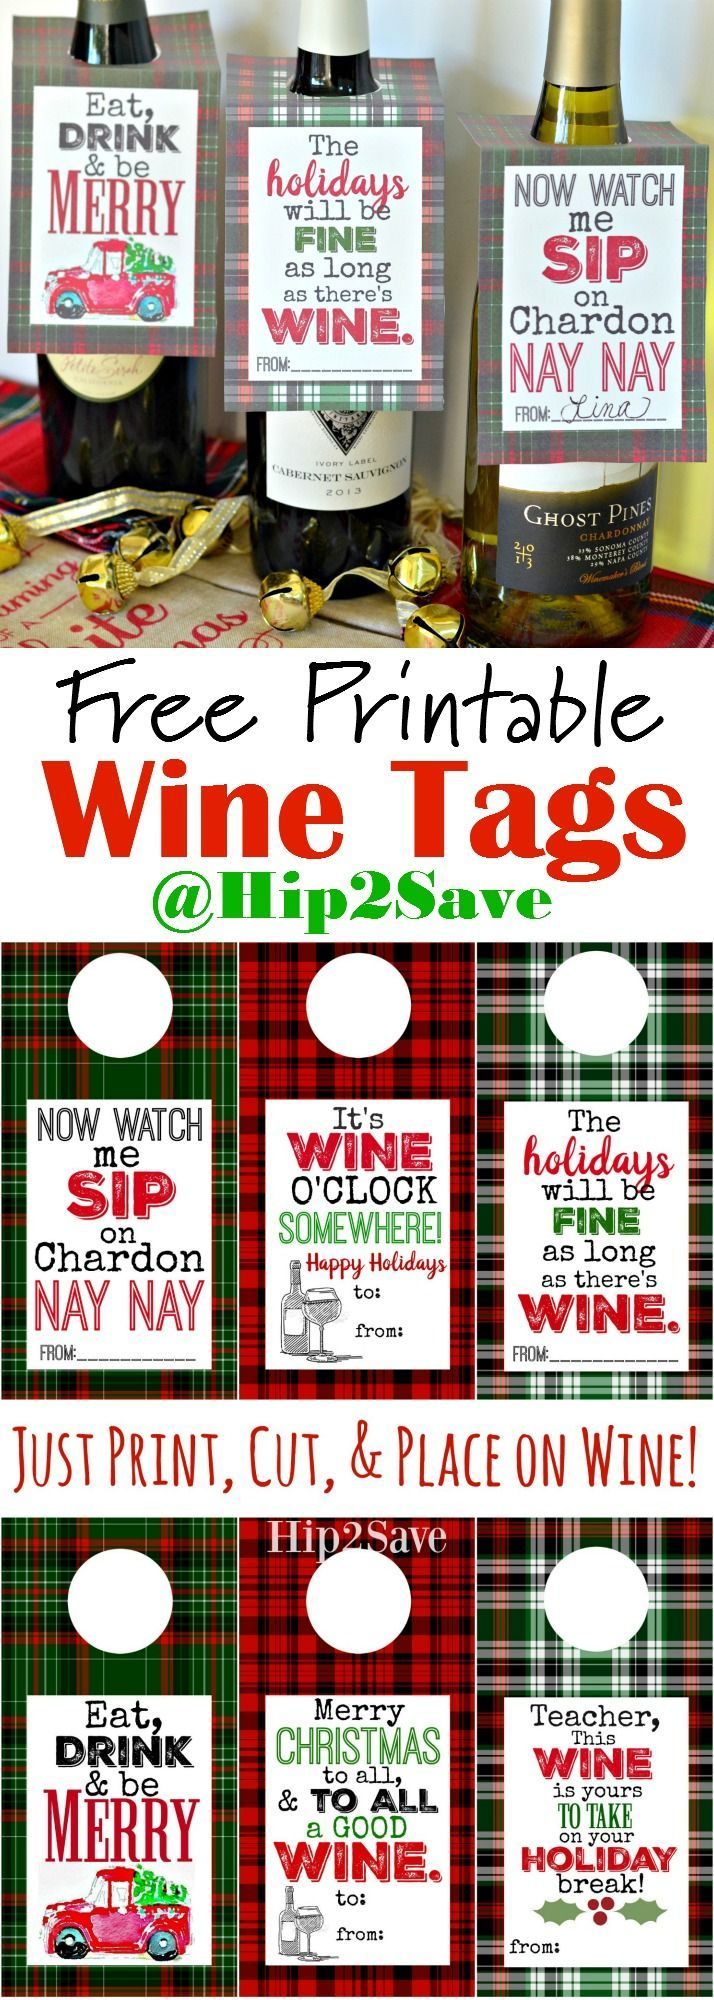 Free Printable Holiday Wine Tags (Easy Gift Idea). These will add to the festive mood in  your home this season! From /hip2save/